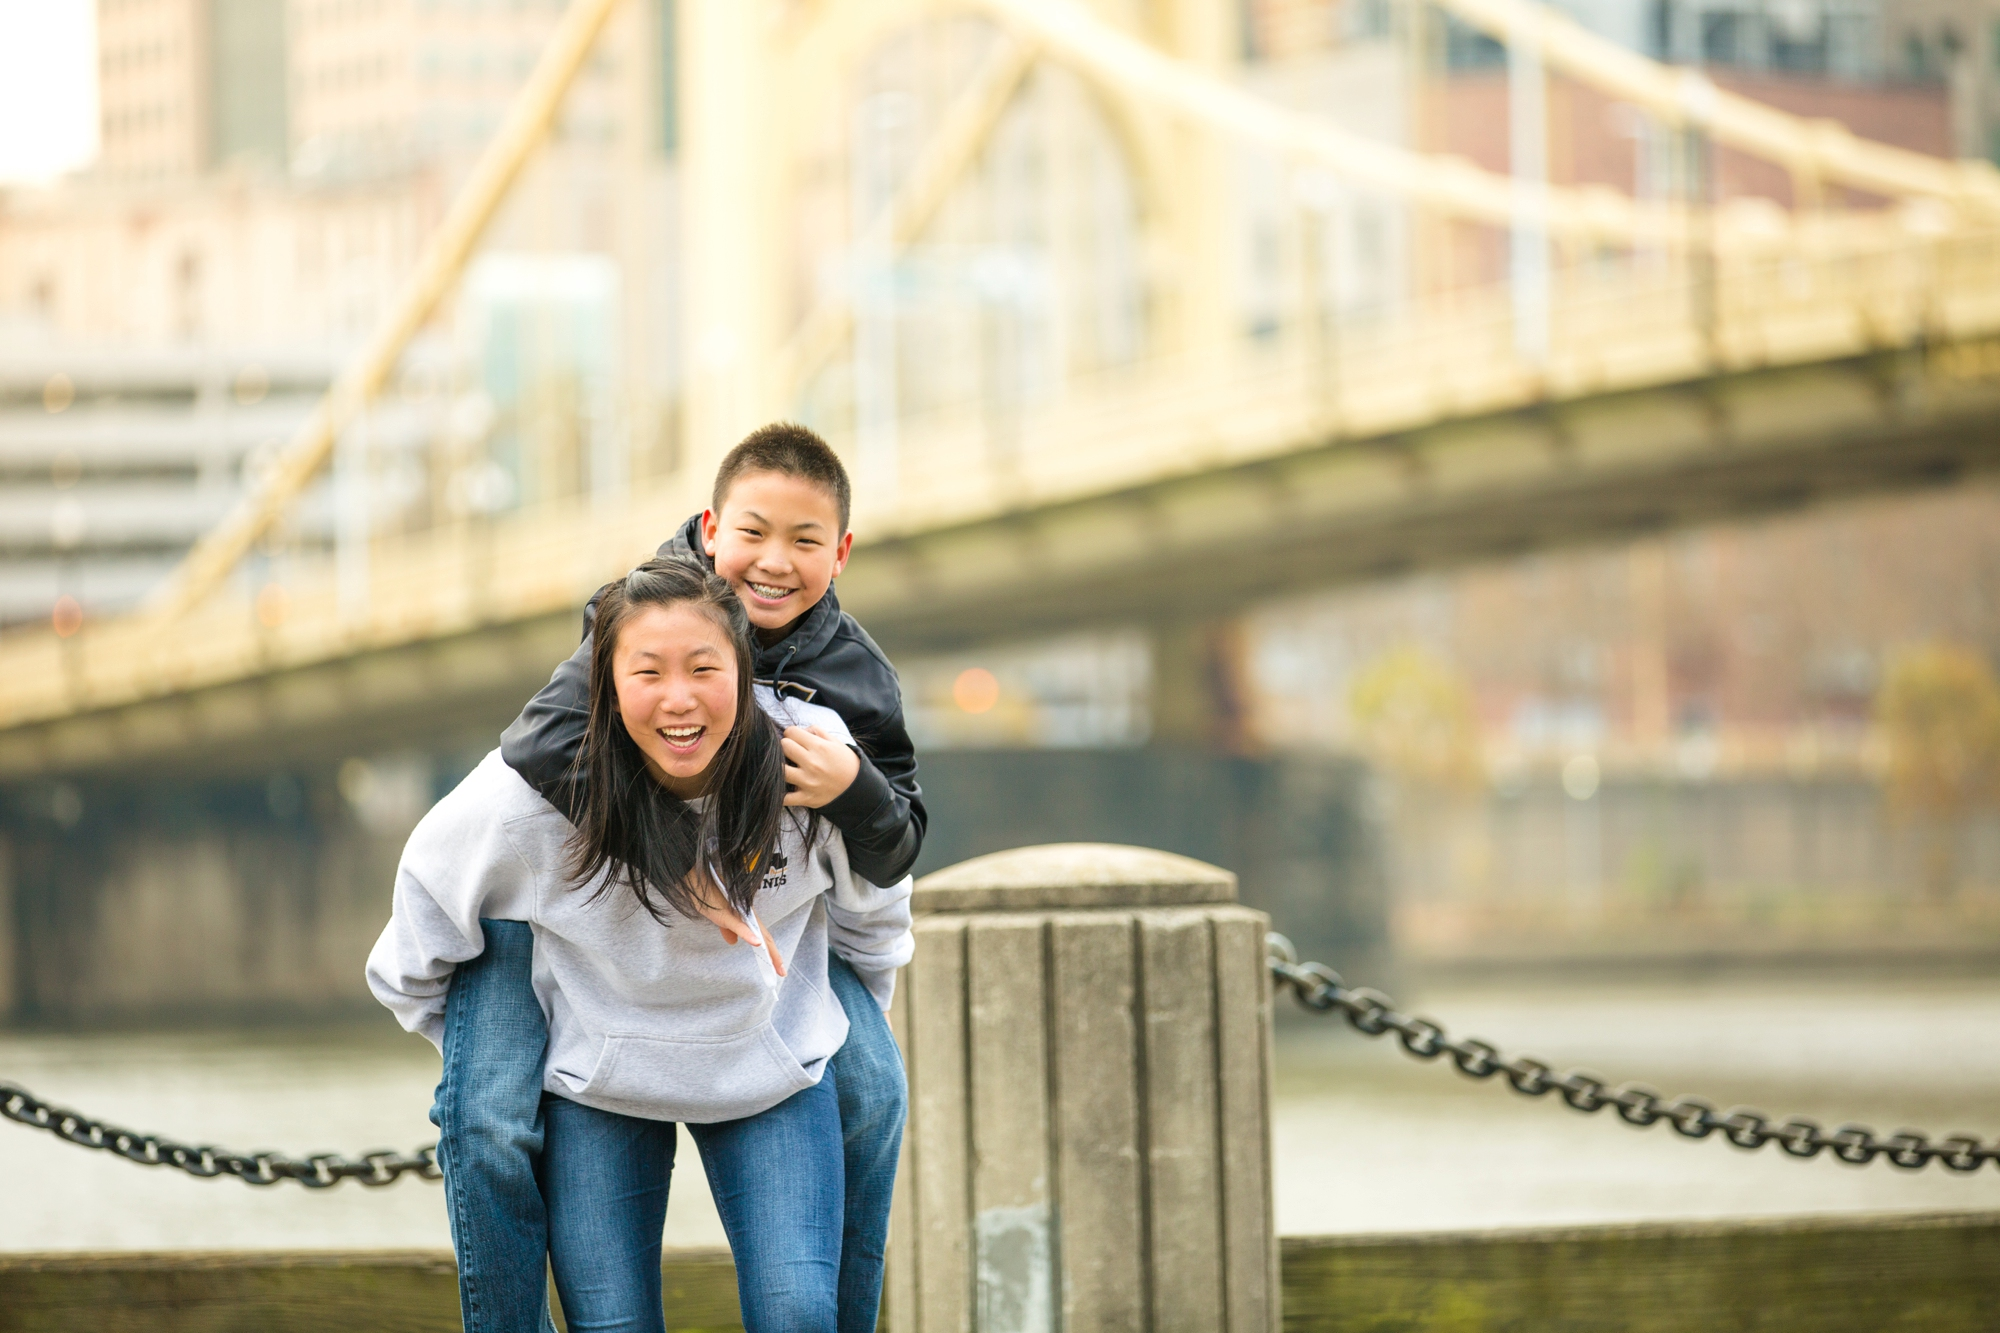 pittsburgh family photographer, cranberry township family photographer, wexford family photographer, north shore family photos